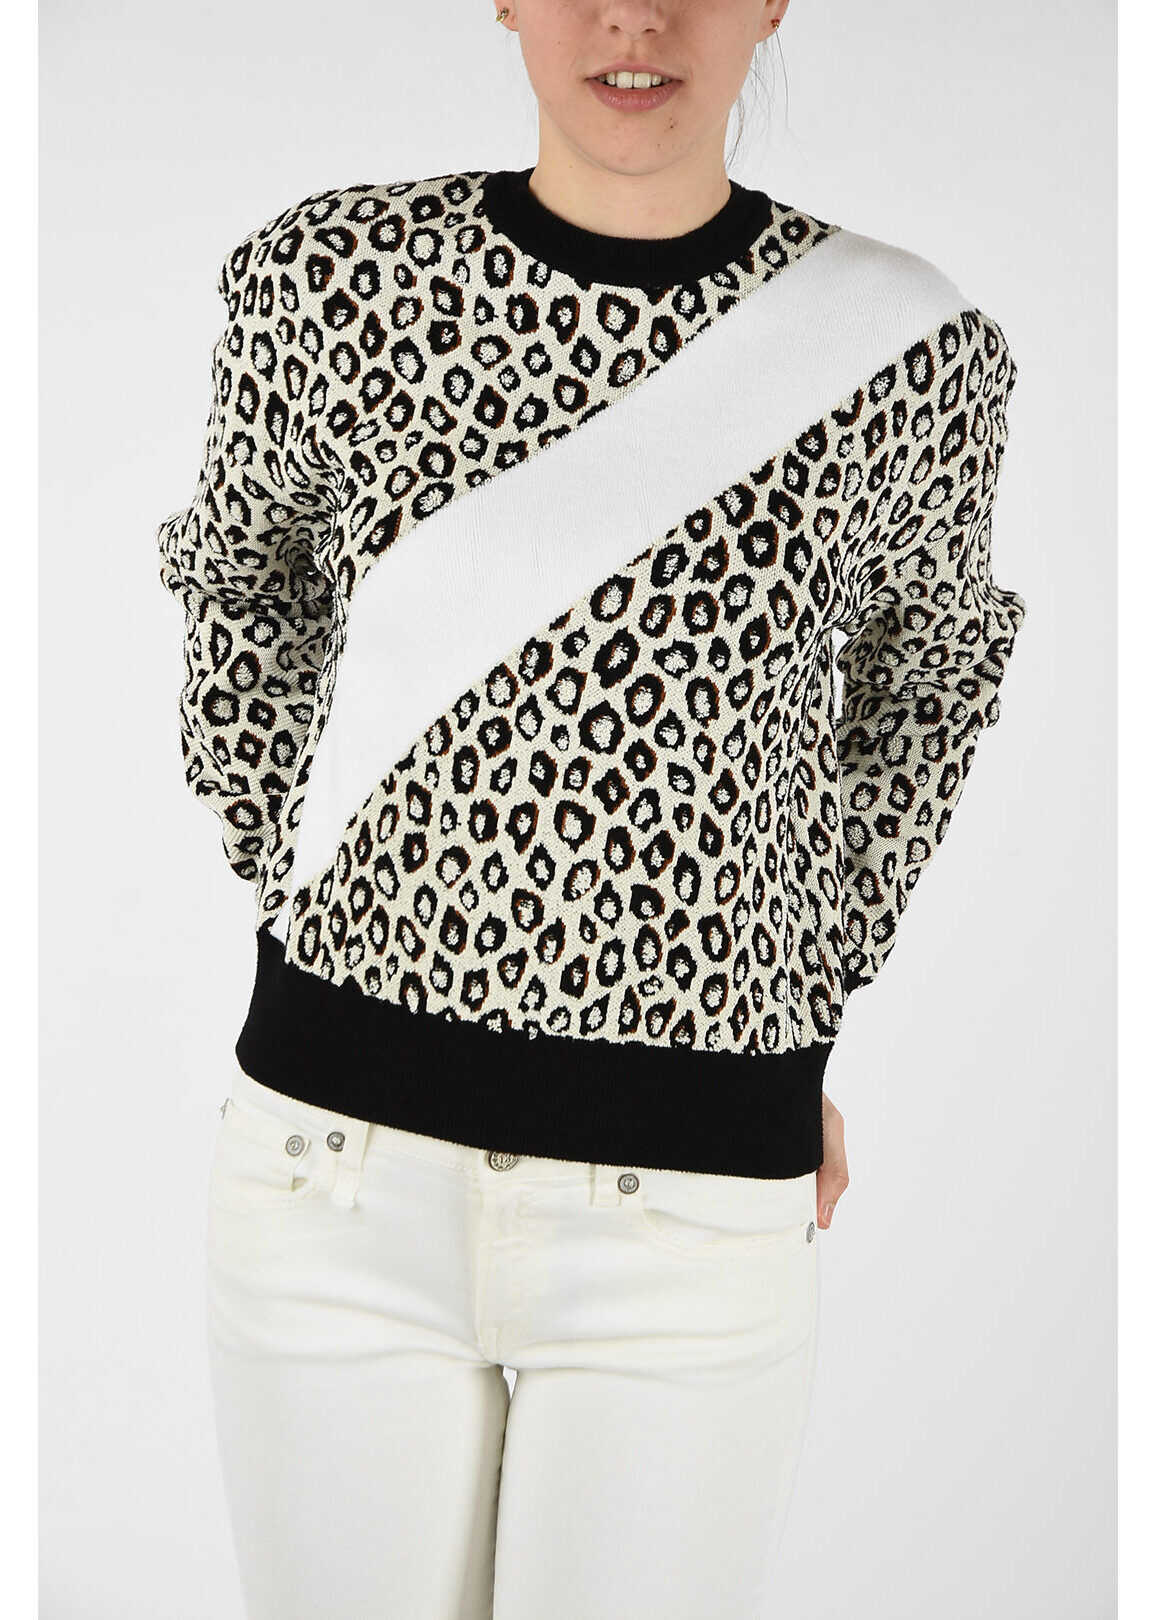 Givenchy embroidered sweater BLACK & WHITE